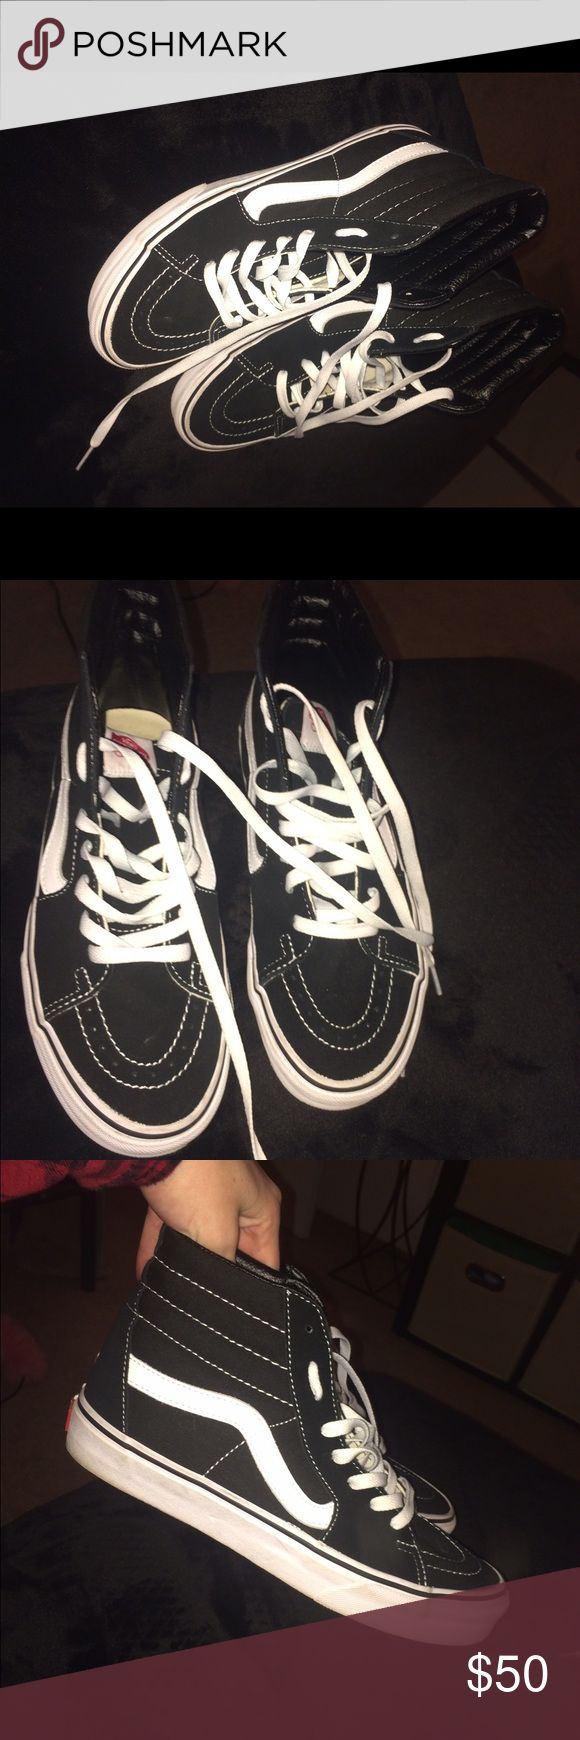 Skate highs vans Worn once only- excellent condition Vans Shoes Sneakers